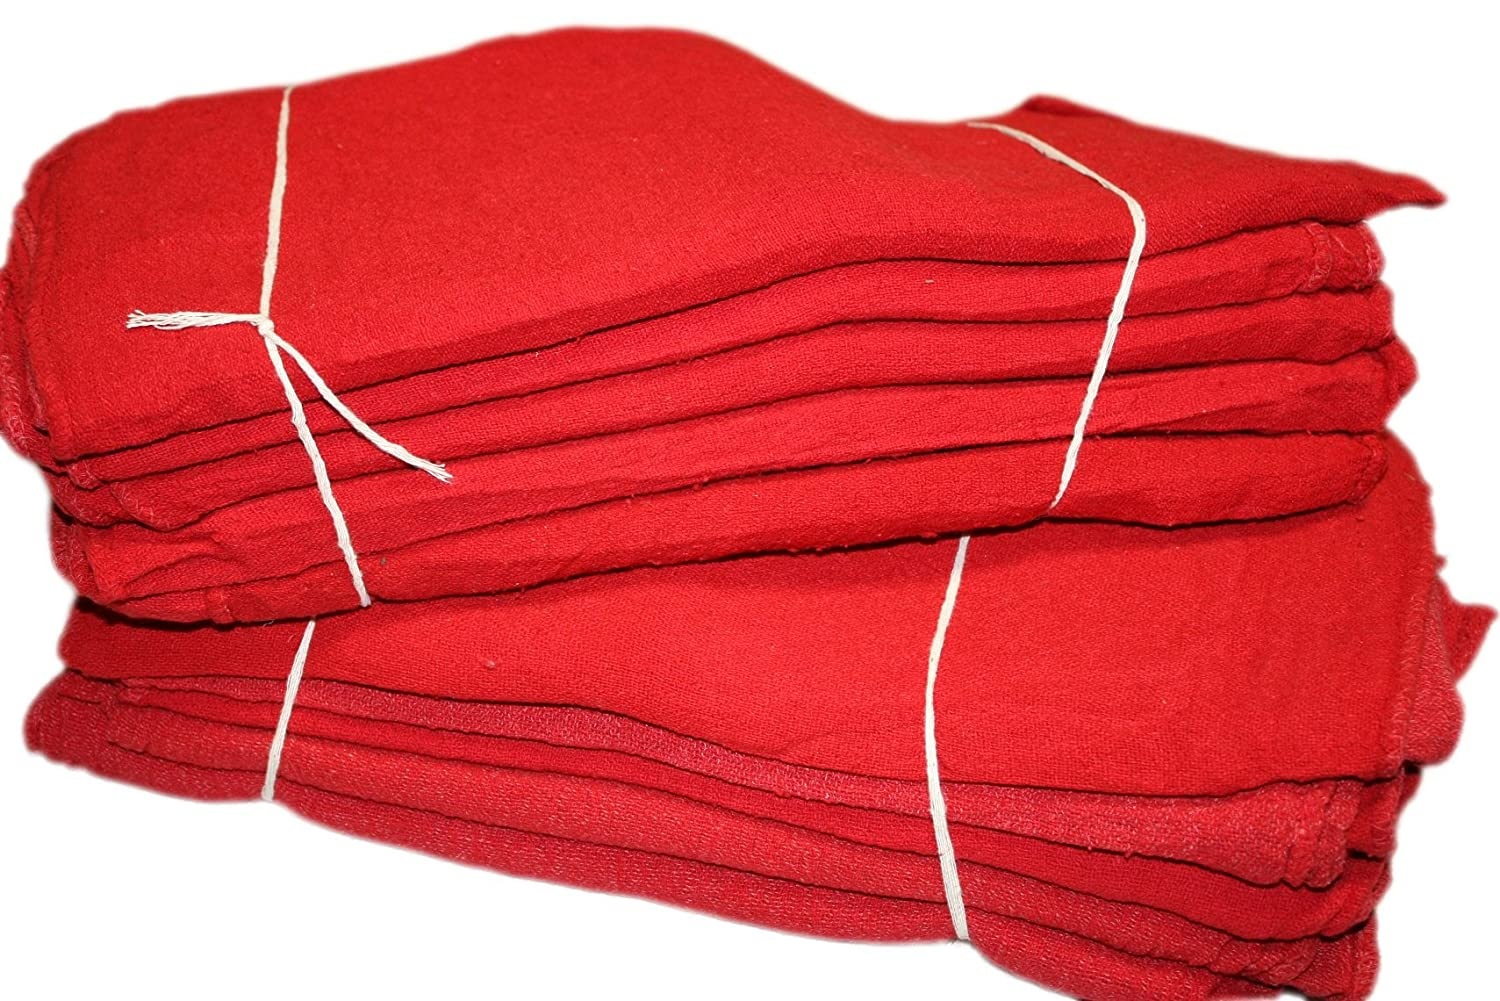 ATLAS 200 Pieces Red Rags, 100% Cotton Shop Towel, Industrial Strength, Towels Cleaning, Wiping Floors Machinery